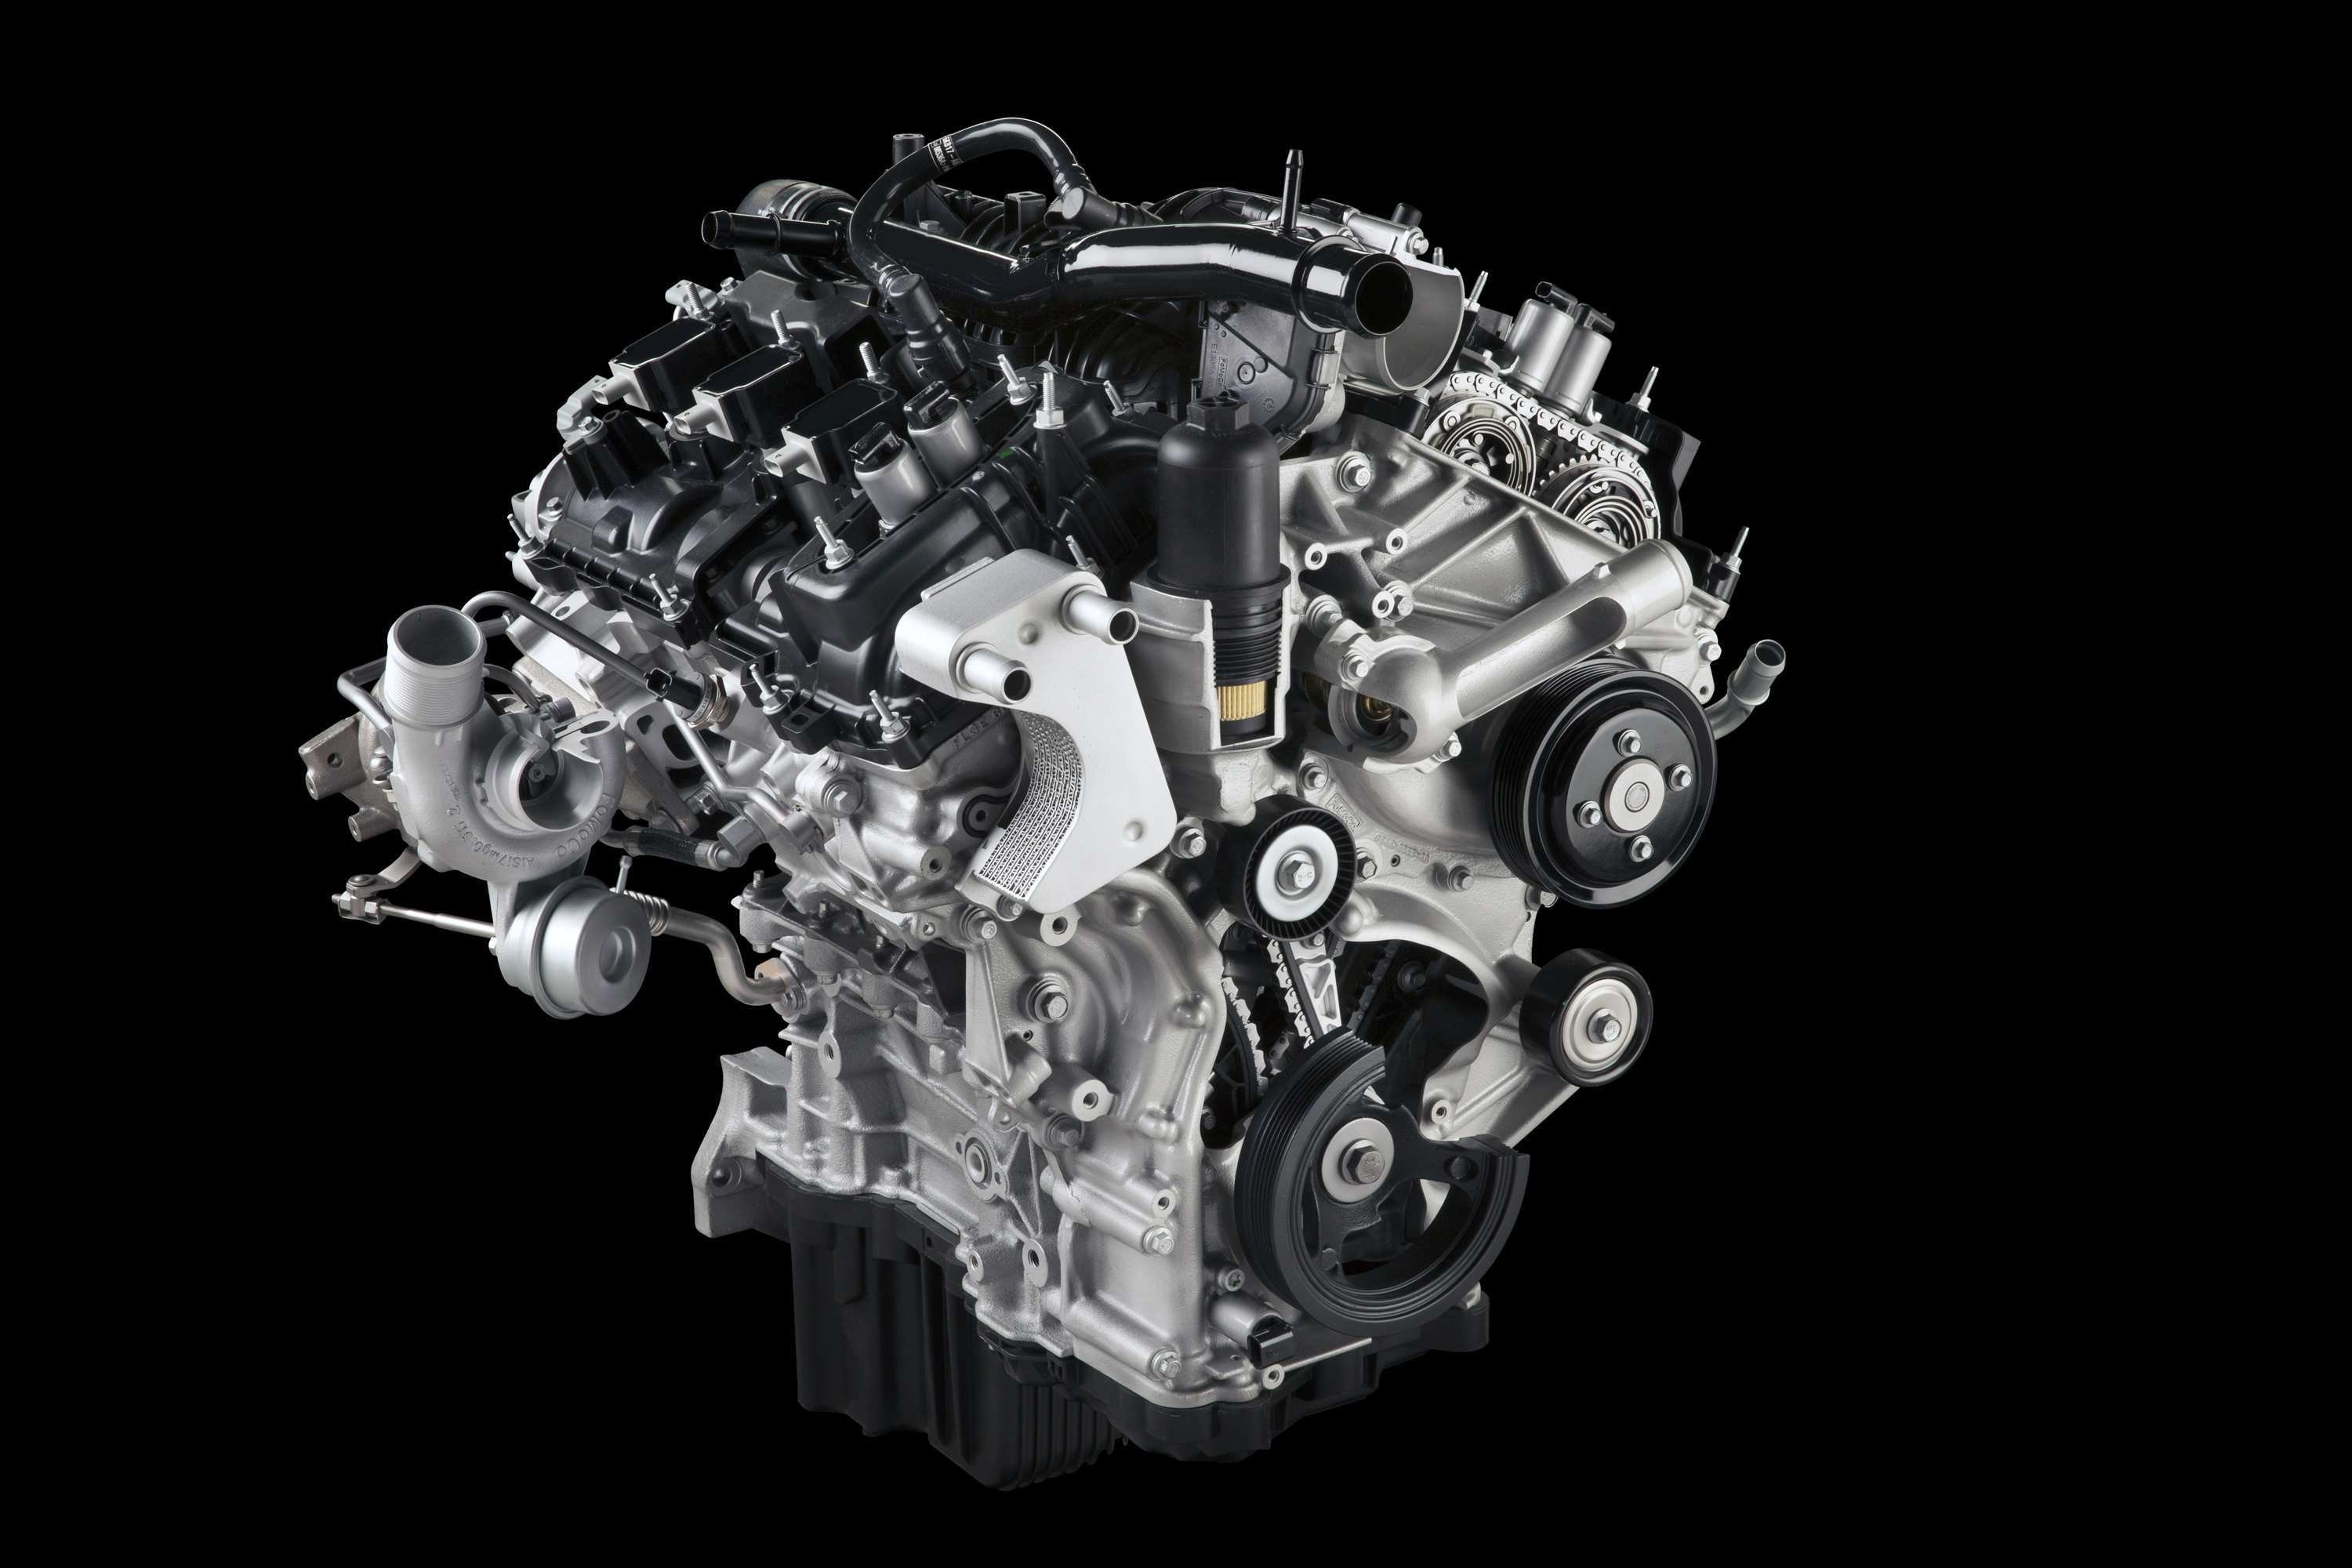 43 New 2019 Ford Ranger Engine Options Engine